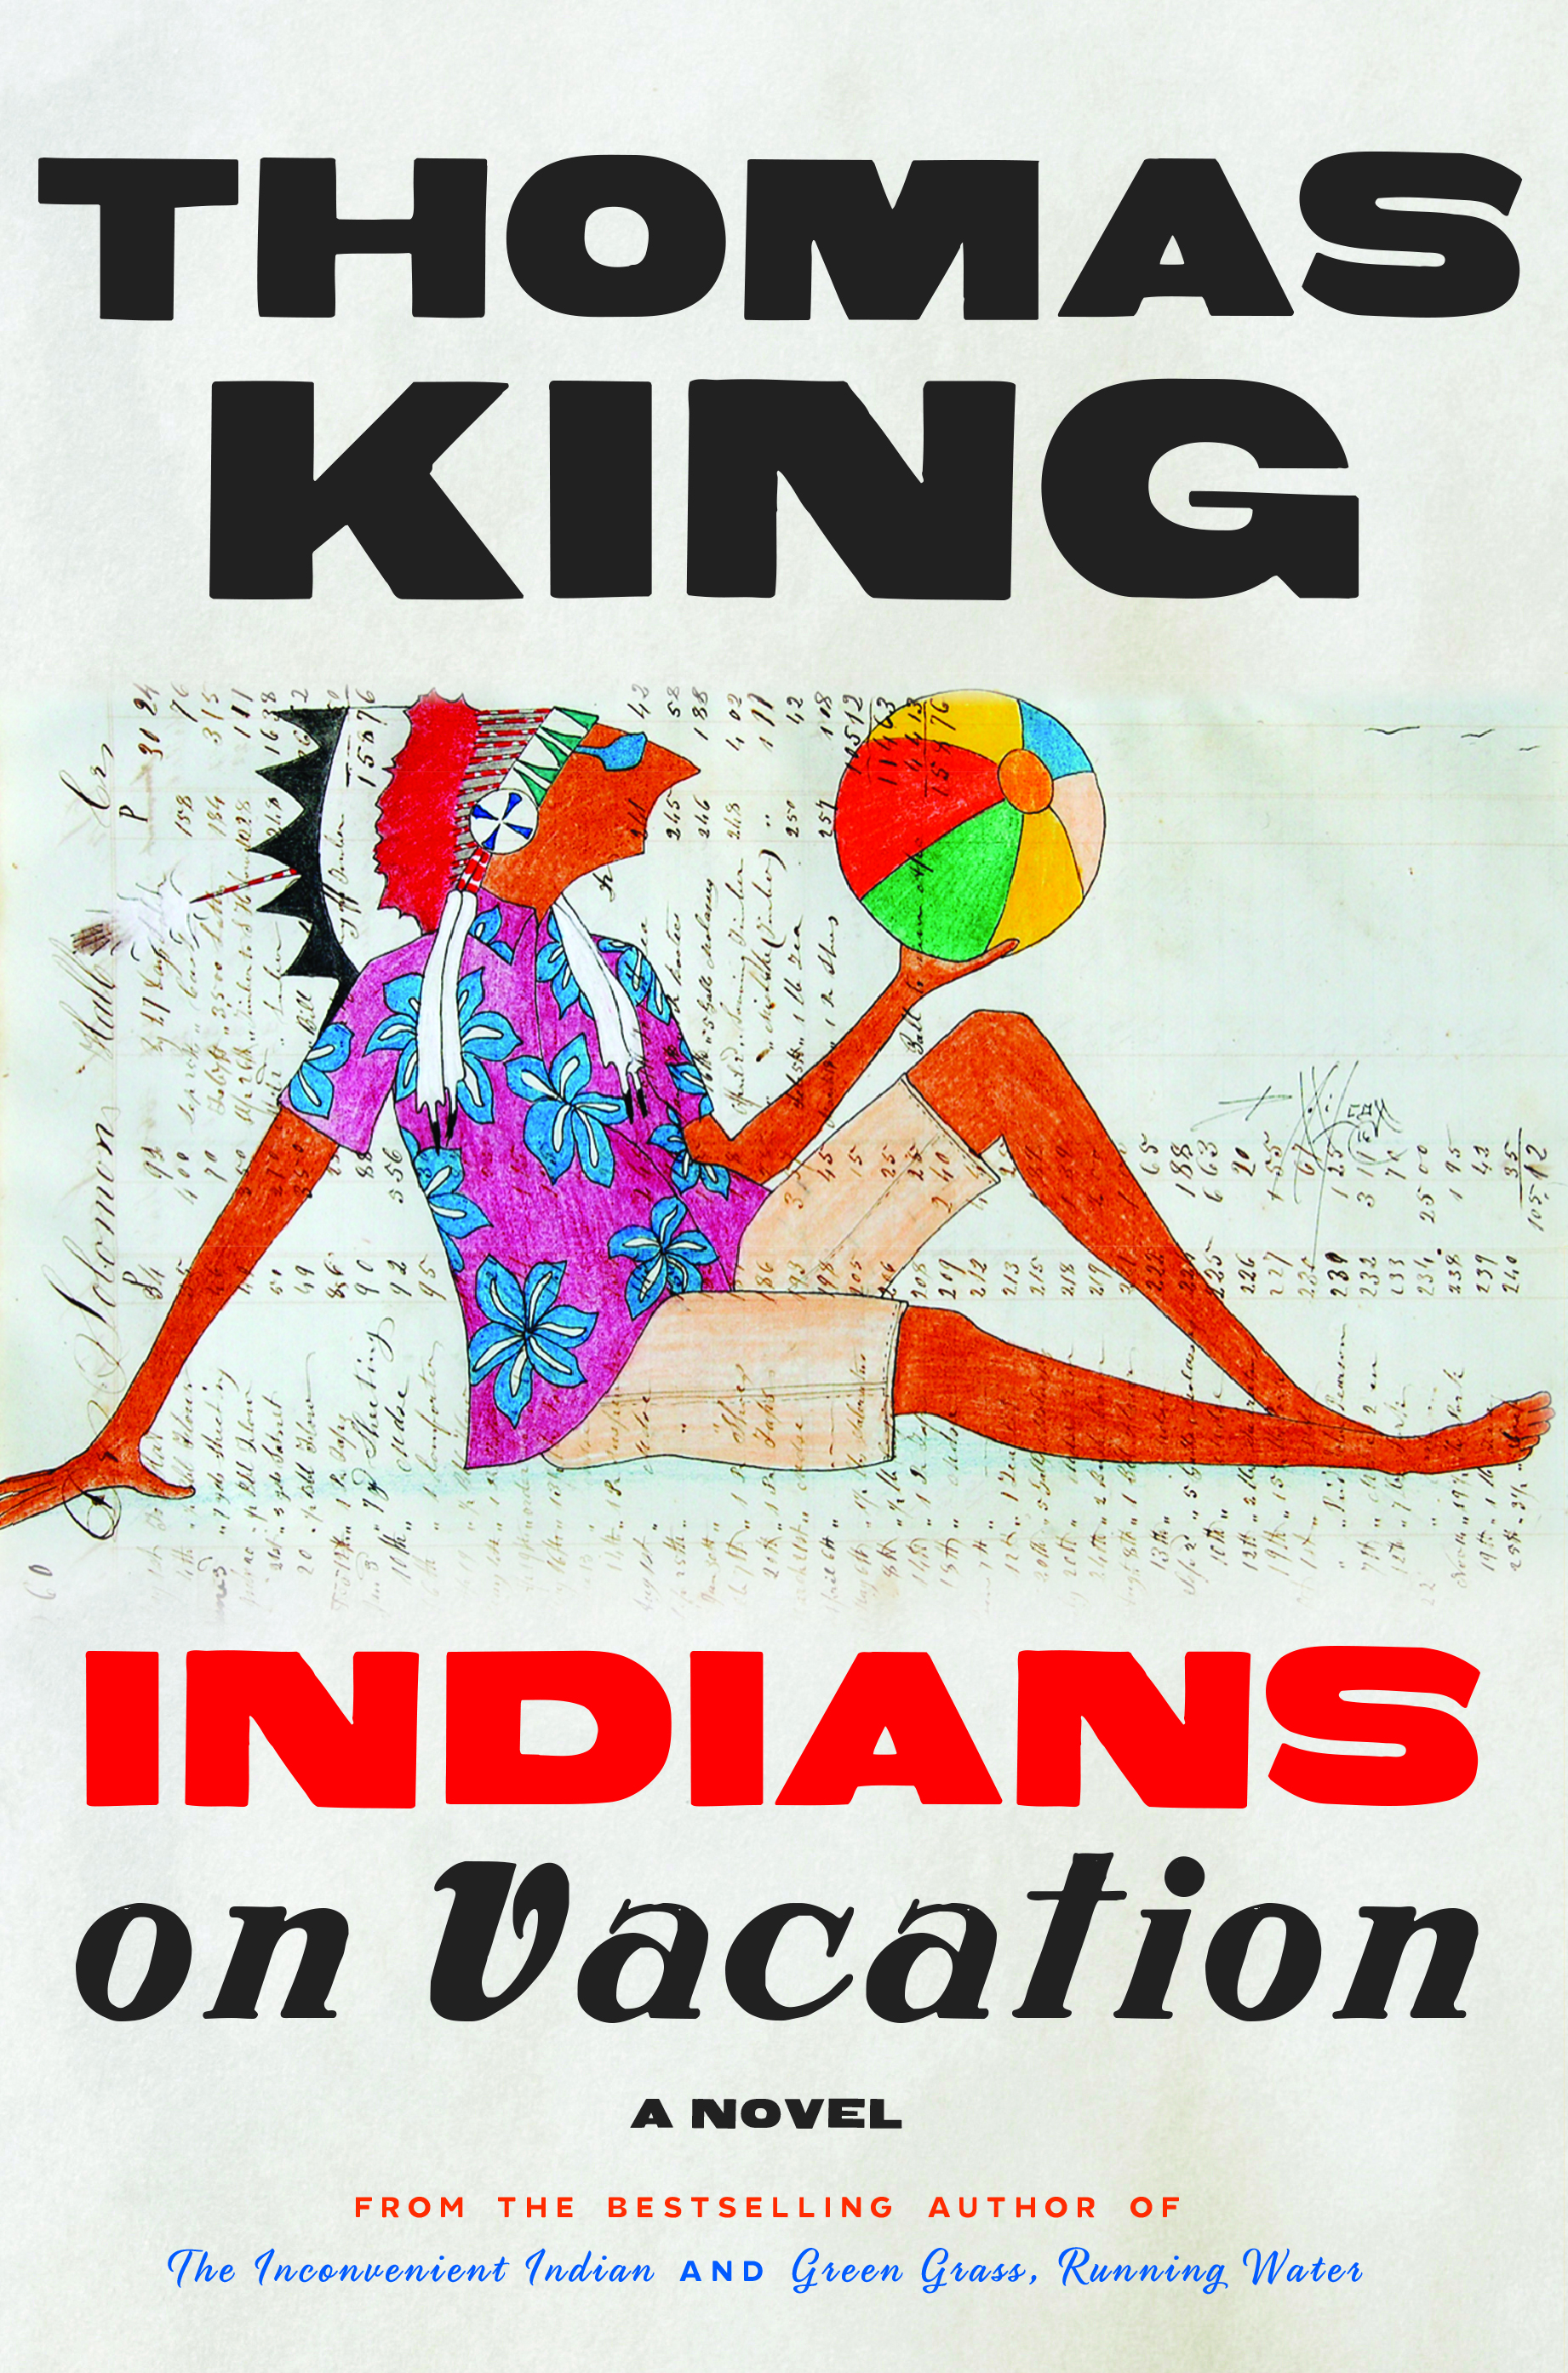 King Thomas Indians on Vacation Book Jacket